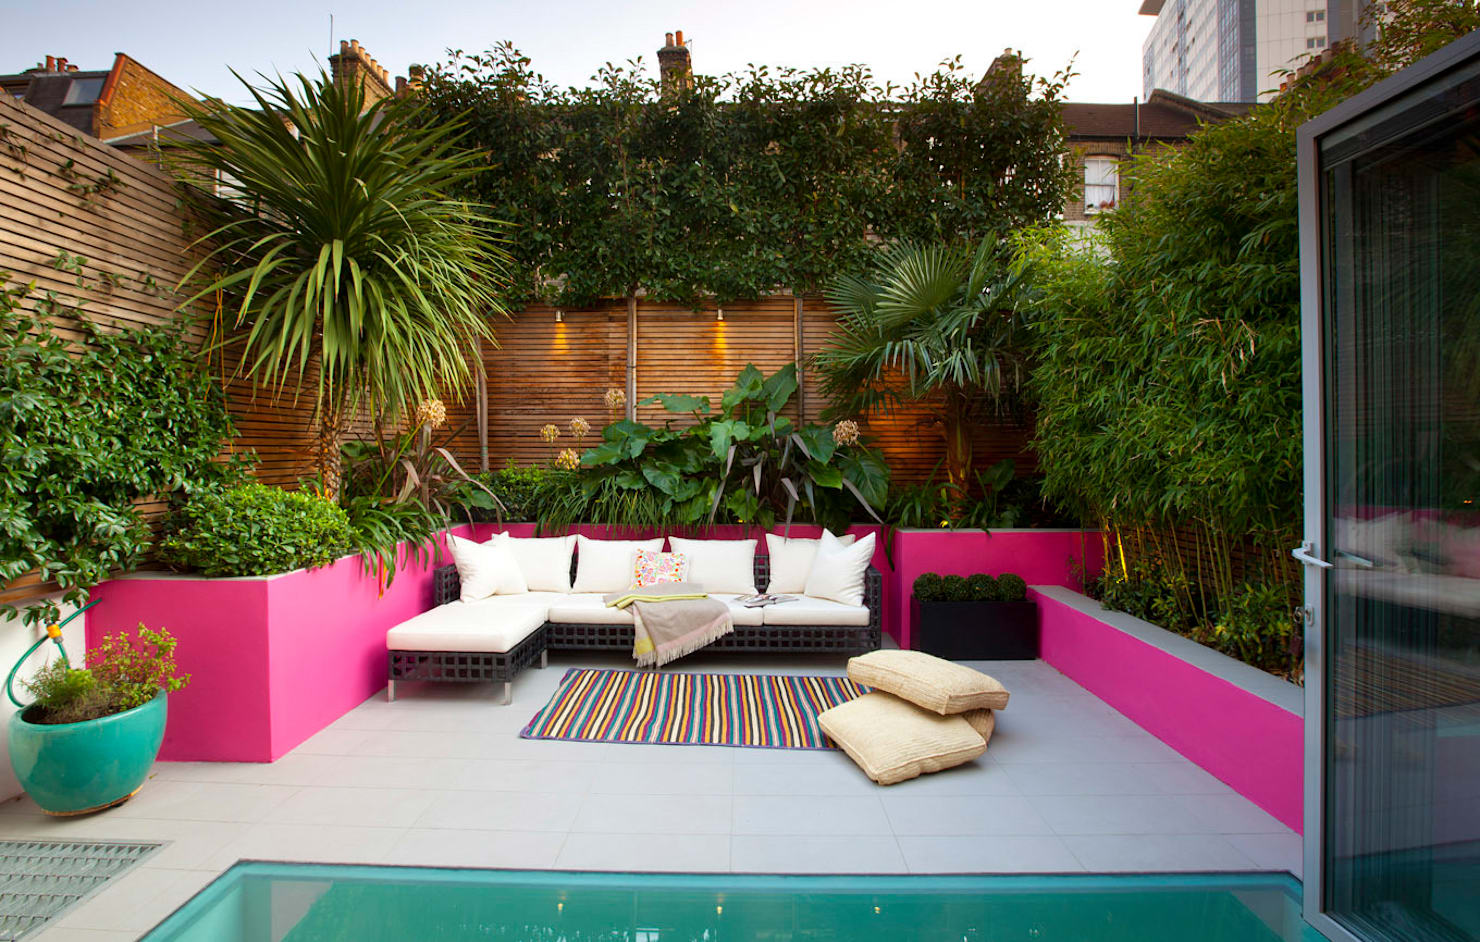 6 small things that make a big difference in your garden